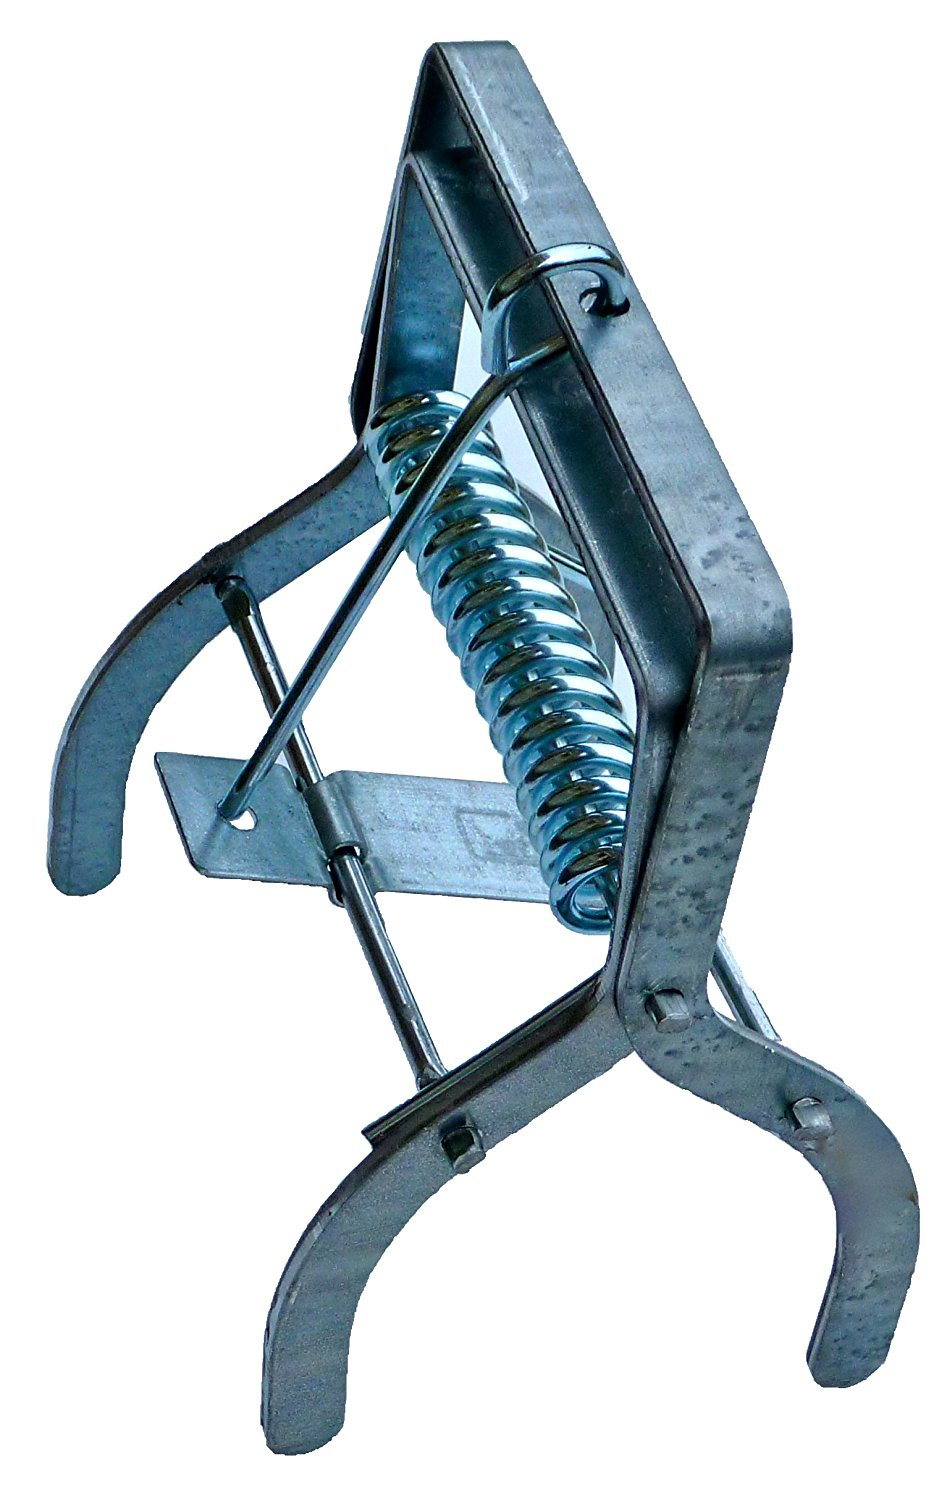 Talpex Genuine Mole Trap